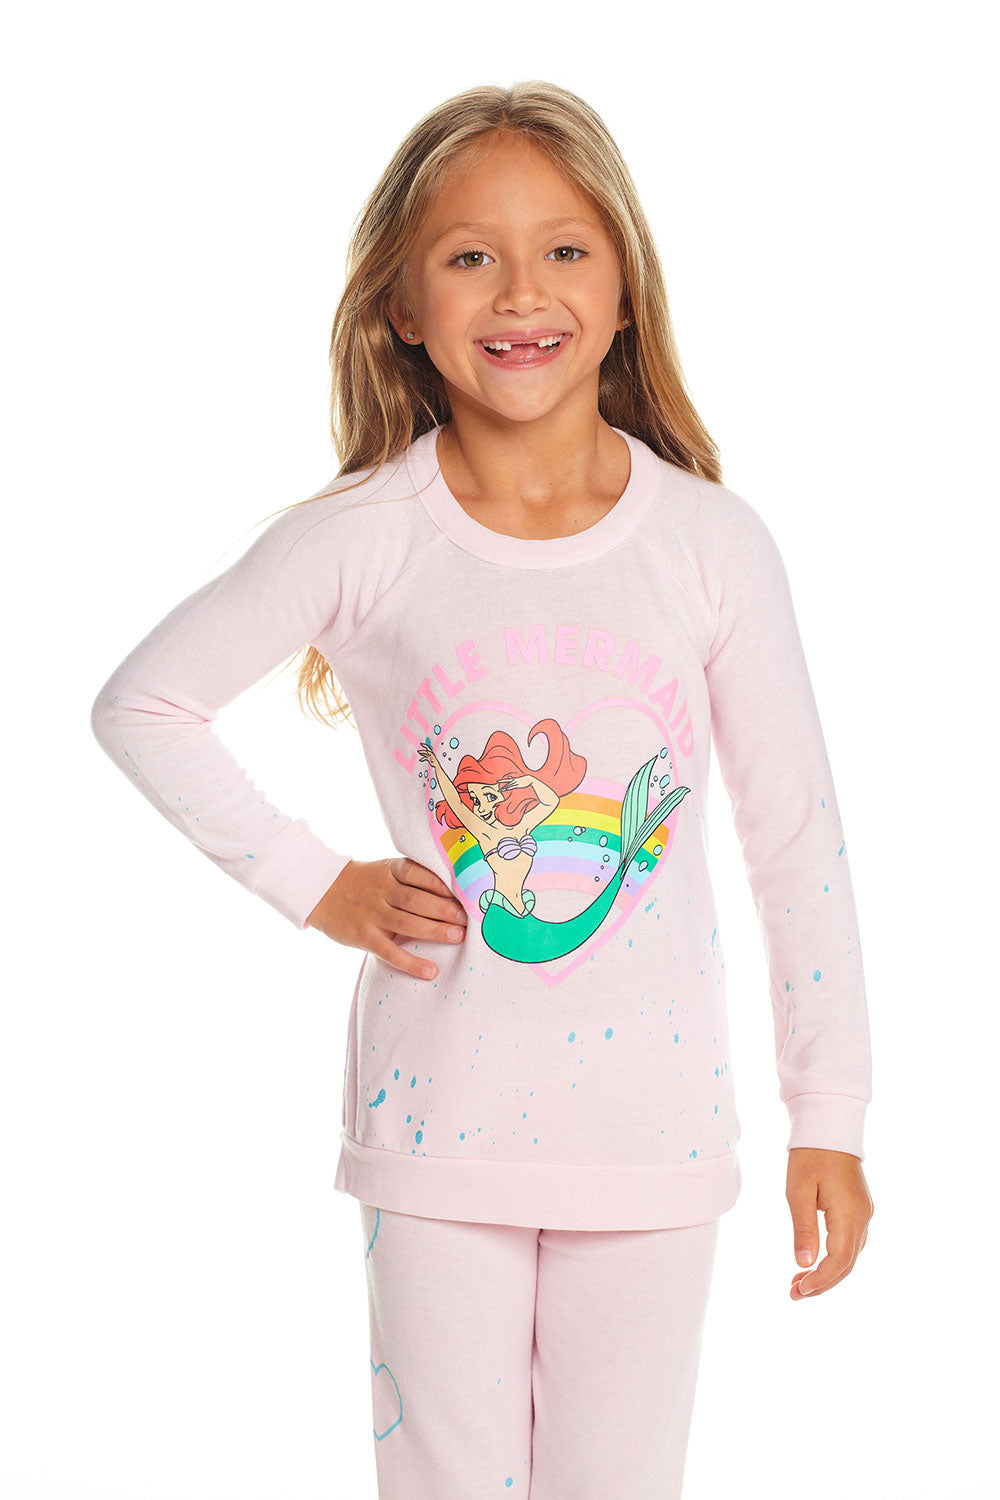 Disney's The Little Mermaid - Little Mermaid Heart GIRLS chaserbrand4.myshopify.com